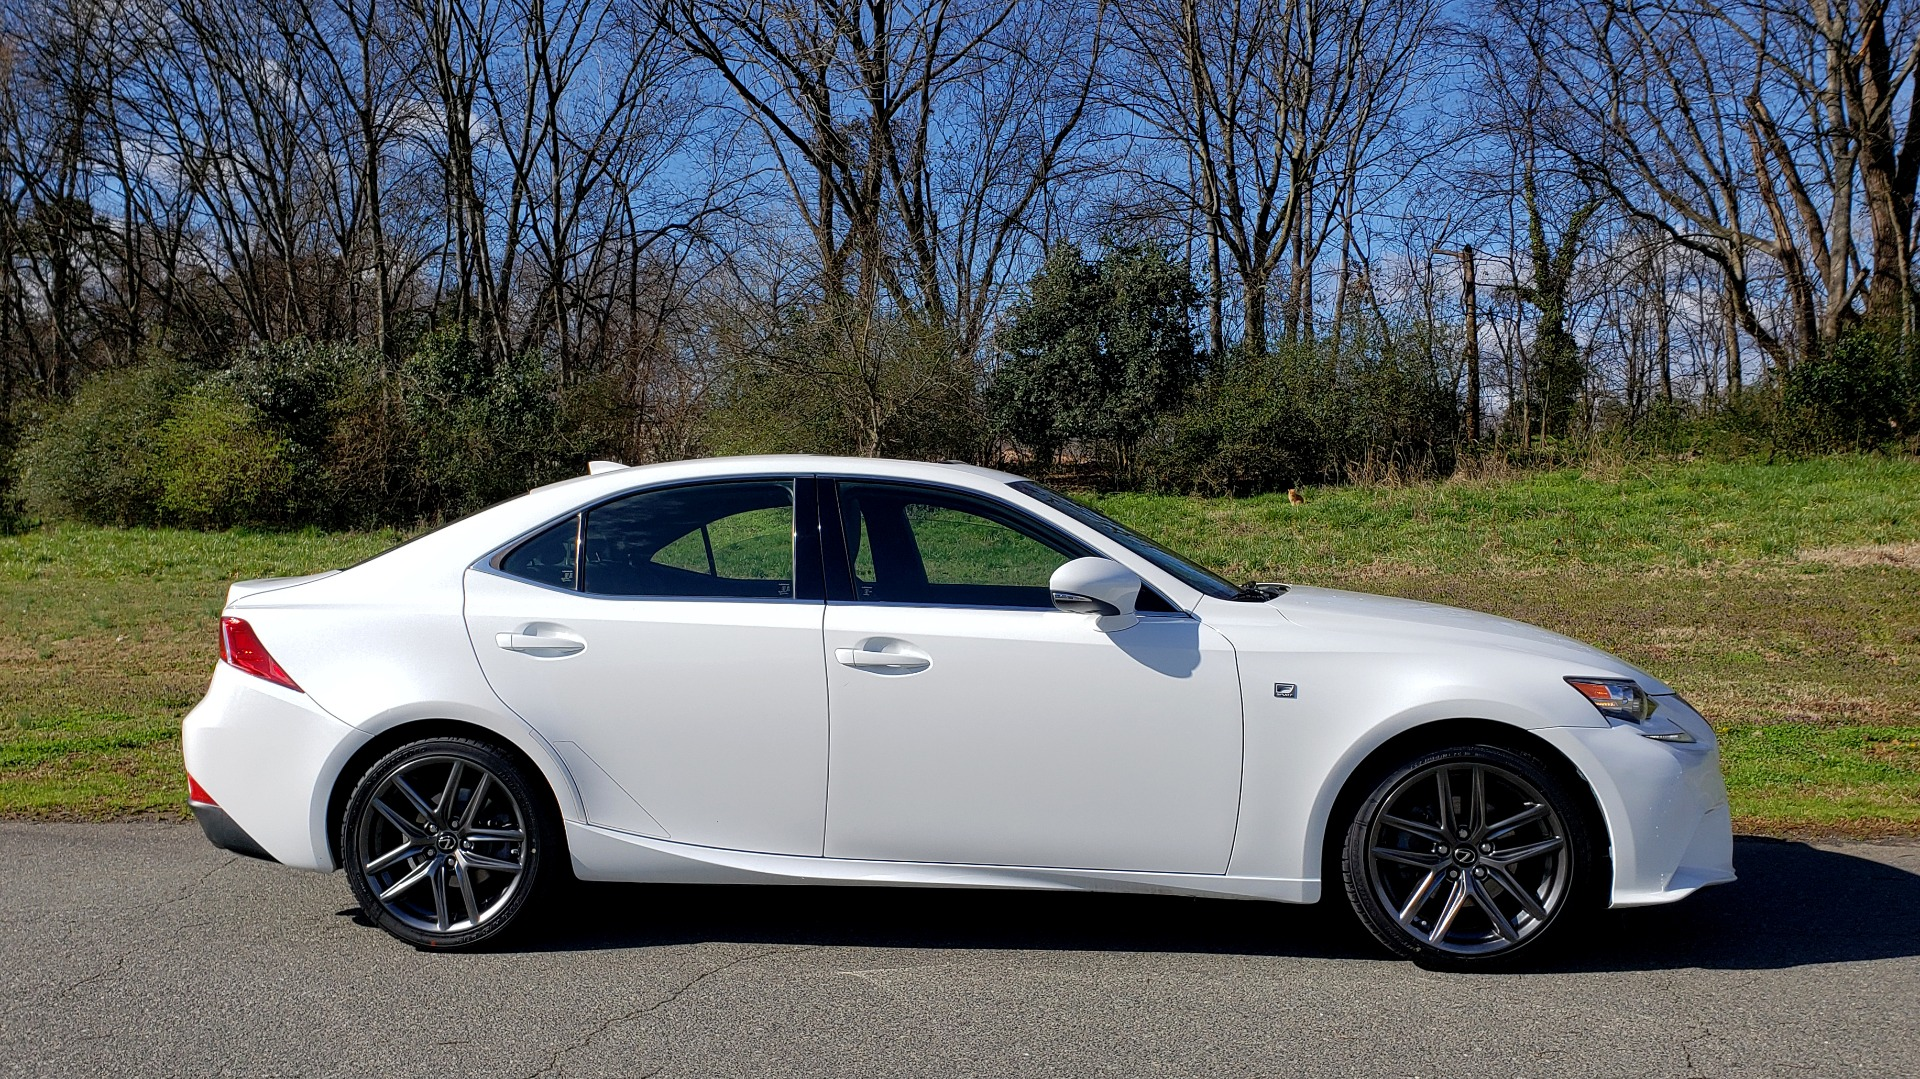 Used 2014 Lexus IS 250 F-SPORT / NAV / SUNROOF / REARVIEW / BSM for sale Sold at Formula Imports in Charlotte NC 28227 5